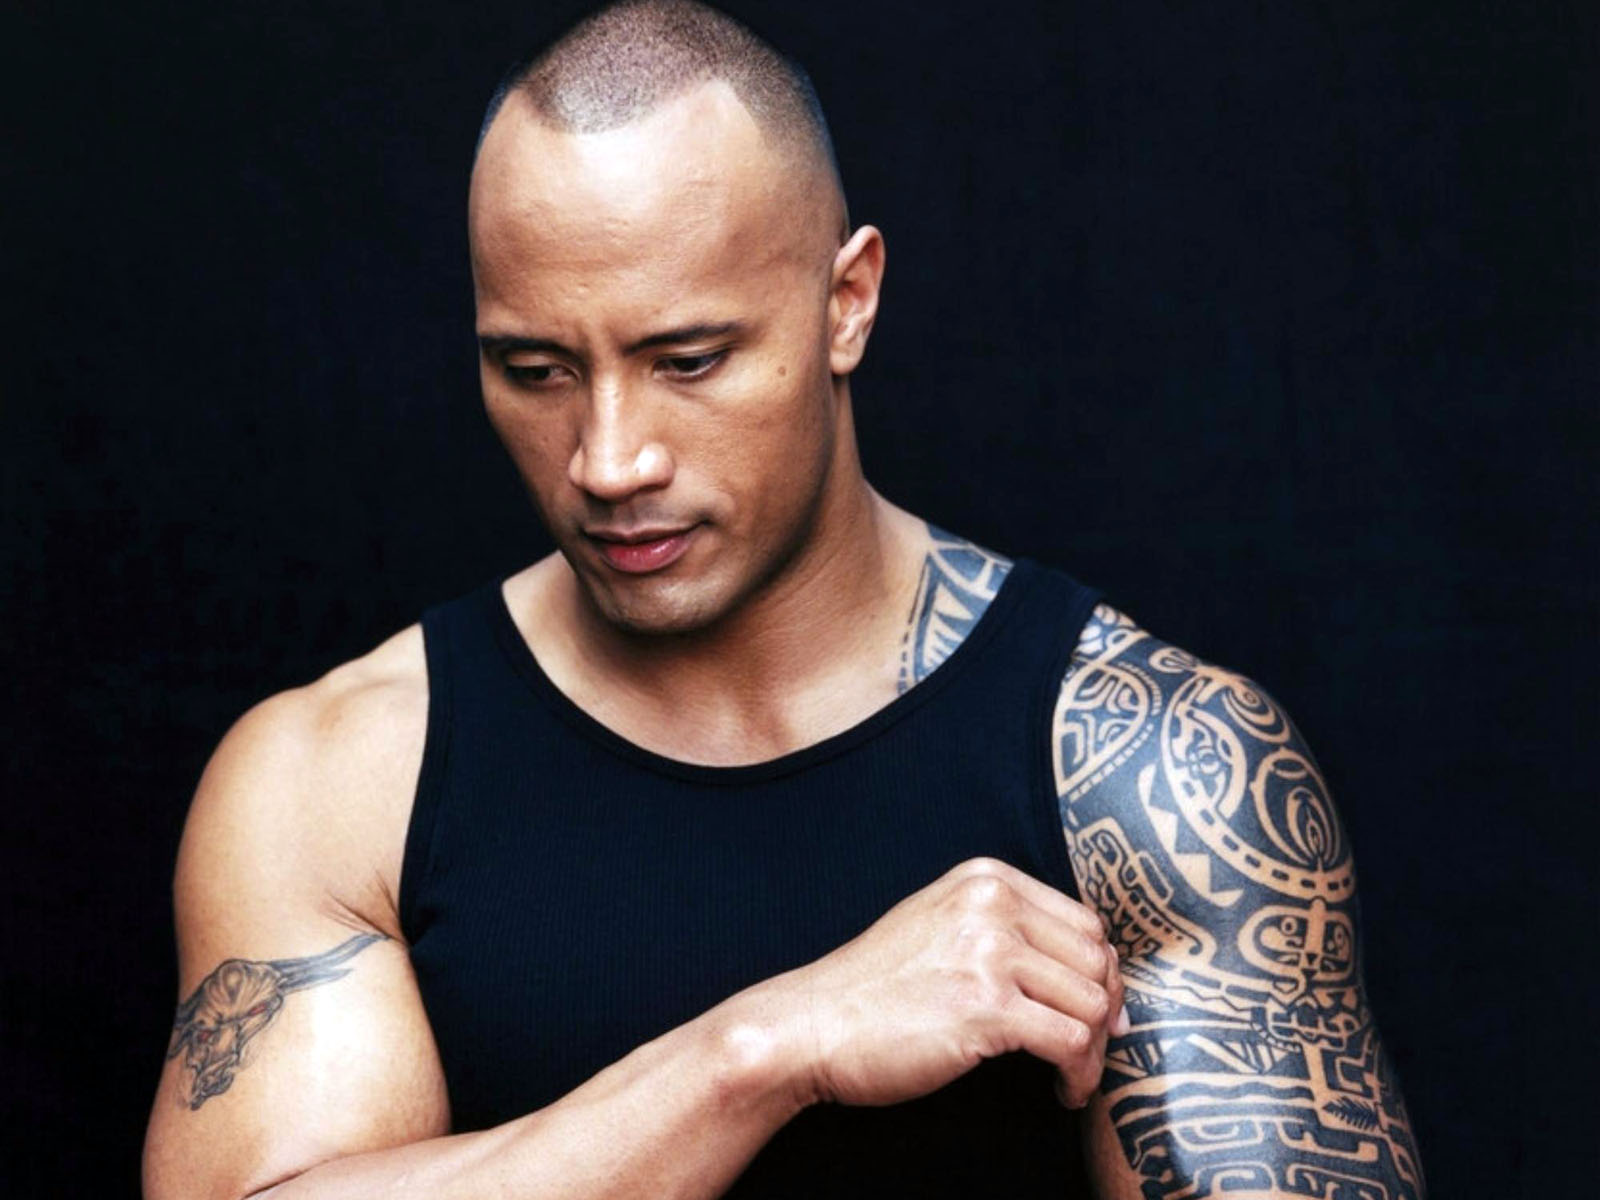 Images Of Dwayne The Rock Johnson: HQ Wallpapers Collection Of Hollywood And WWE Super Star